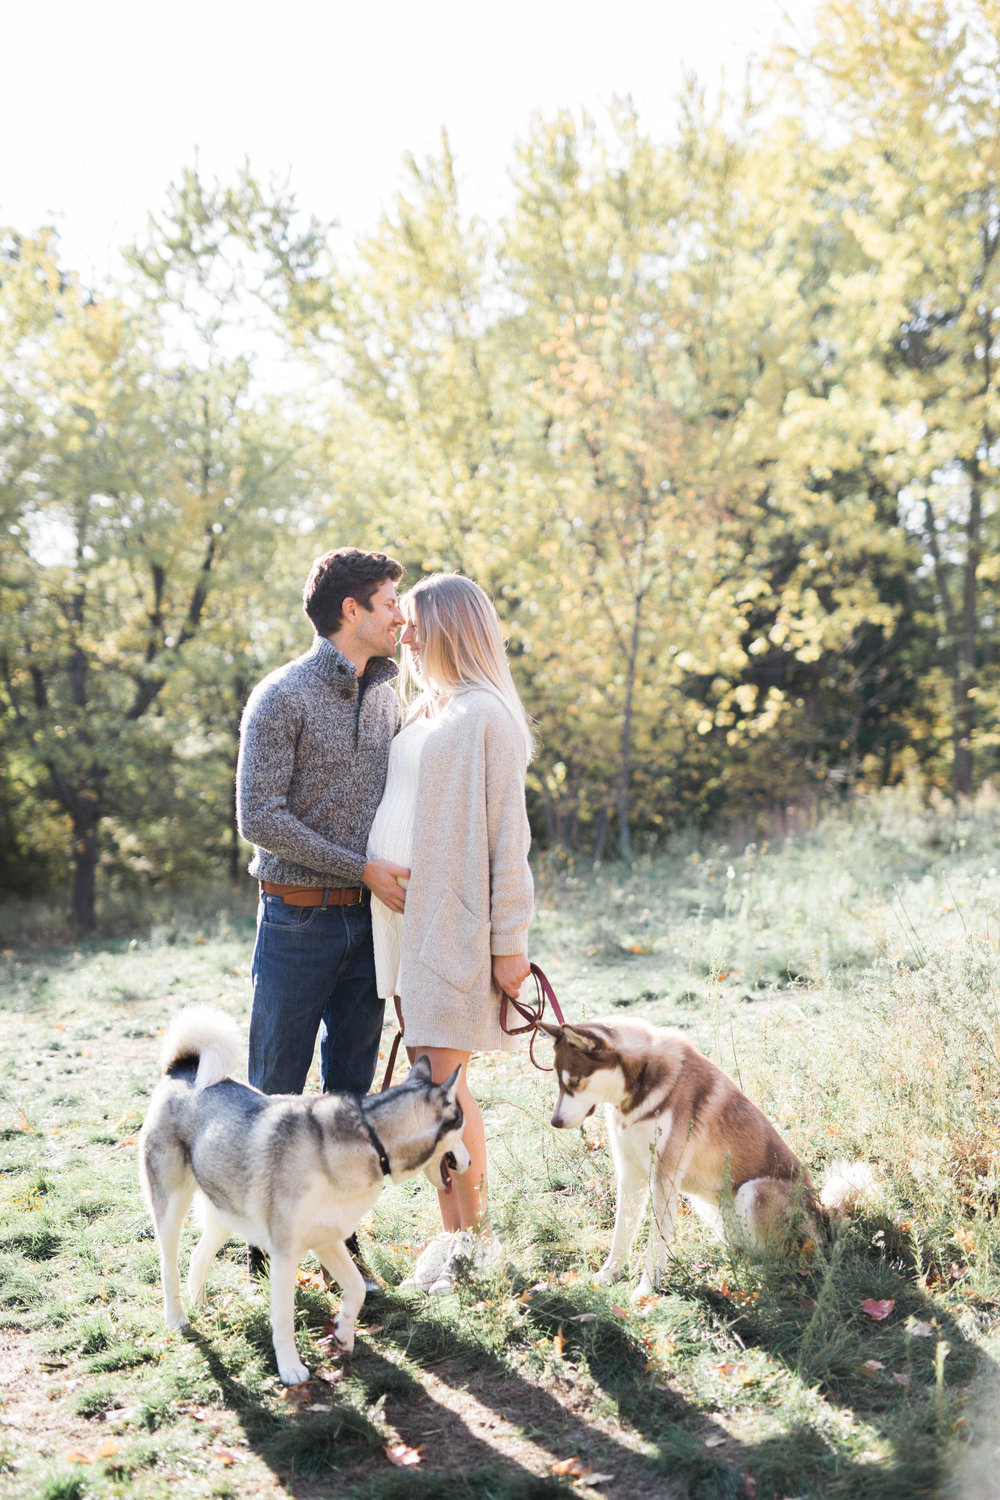 Elza Photographie - Toronto maternity photographer - Film and digital - Bright and airy